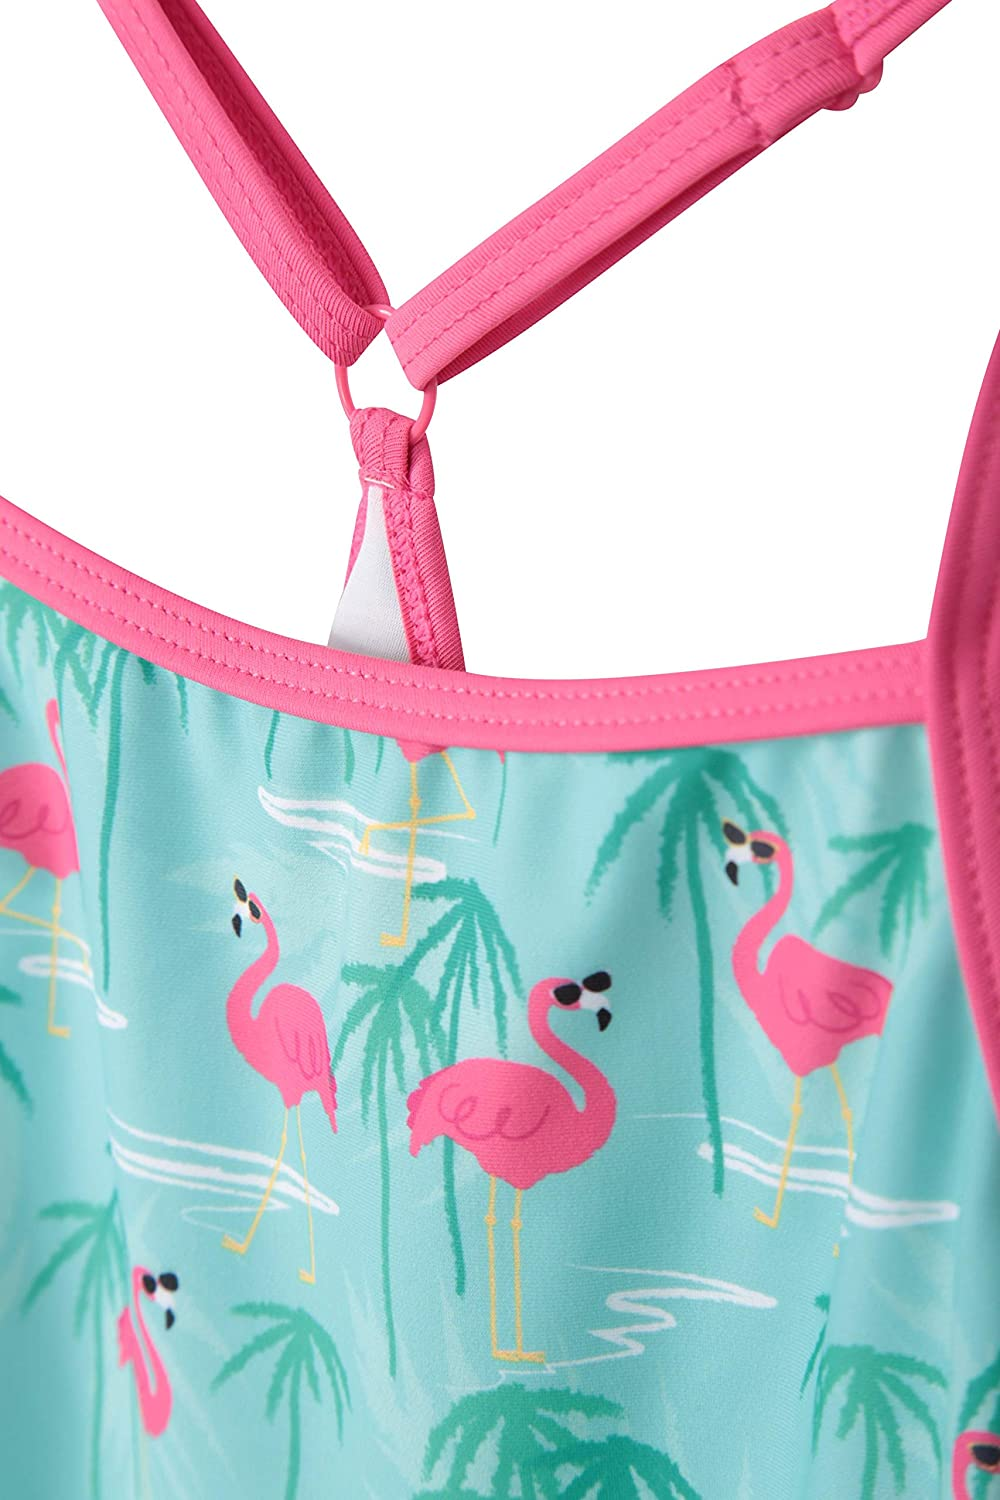 Chlorine Resistant Lightweight Girls Tankini Top Stretchable Top /& Bathing Suit Bottoms Mountain Warehouse Kids Printed Tankini with Matching Bottoms for Swimming